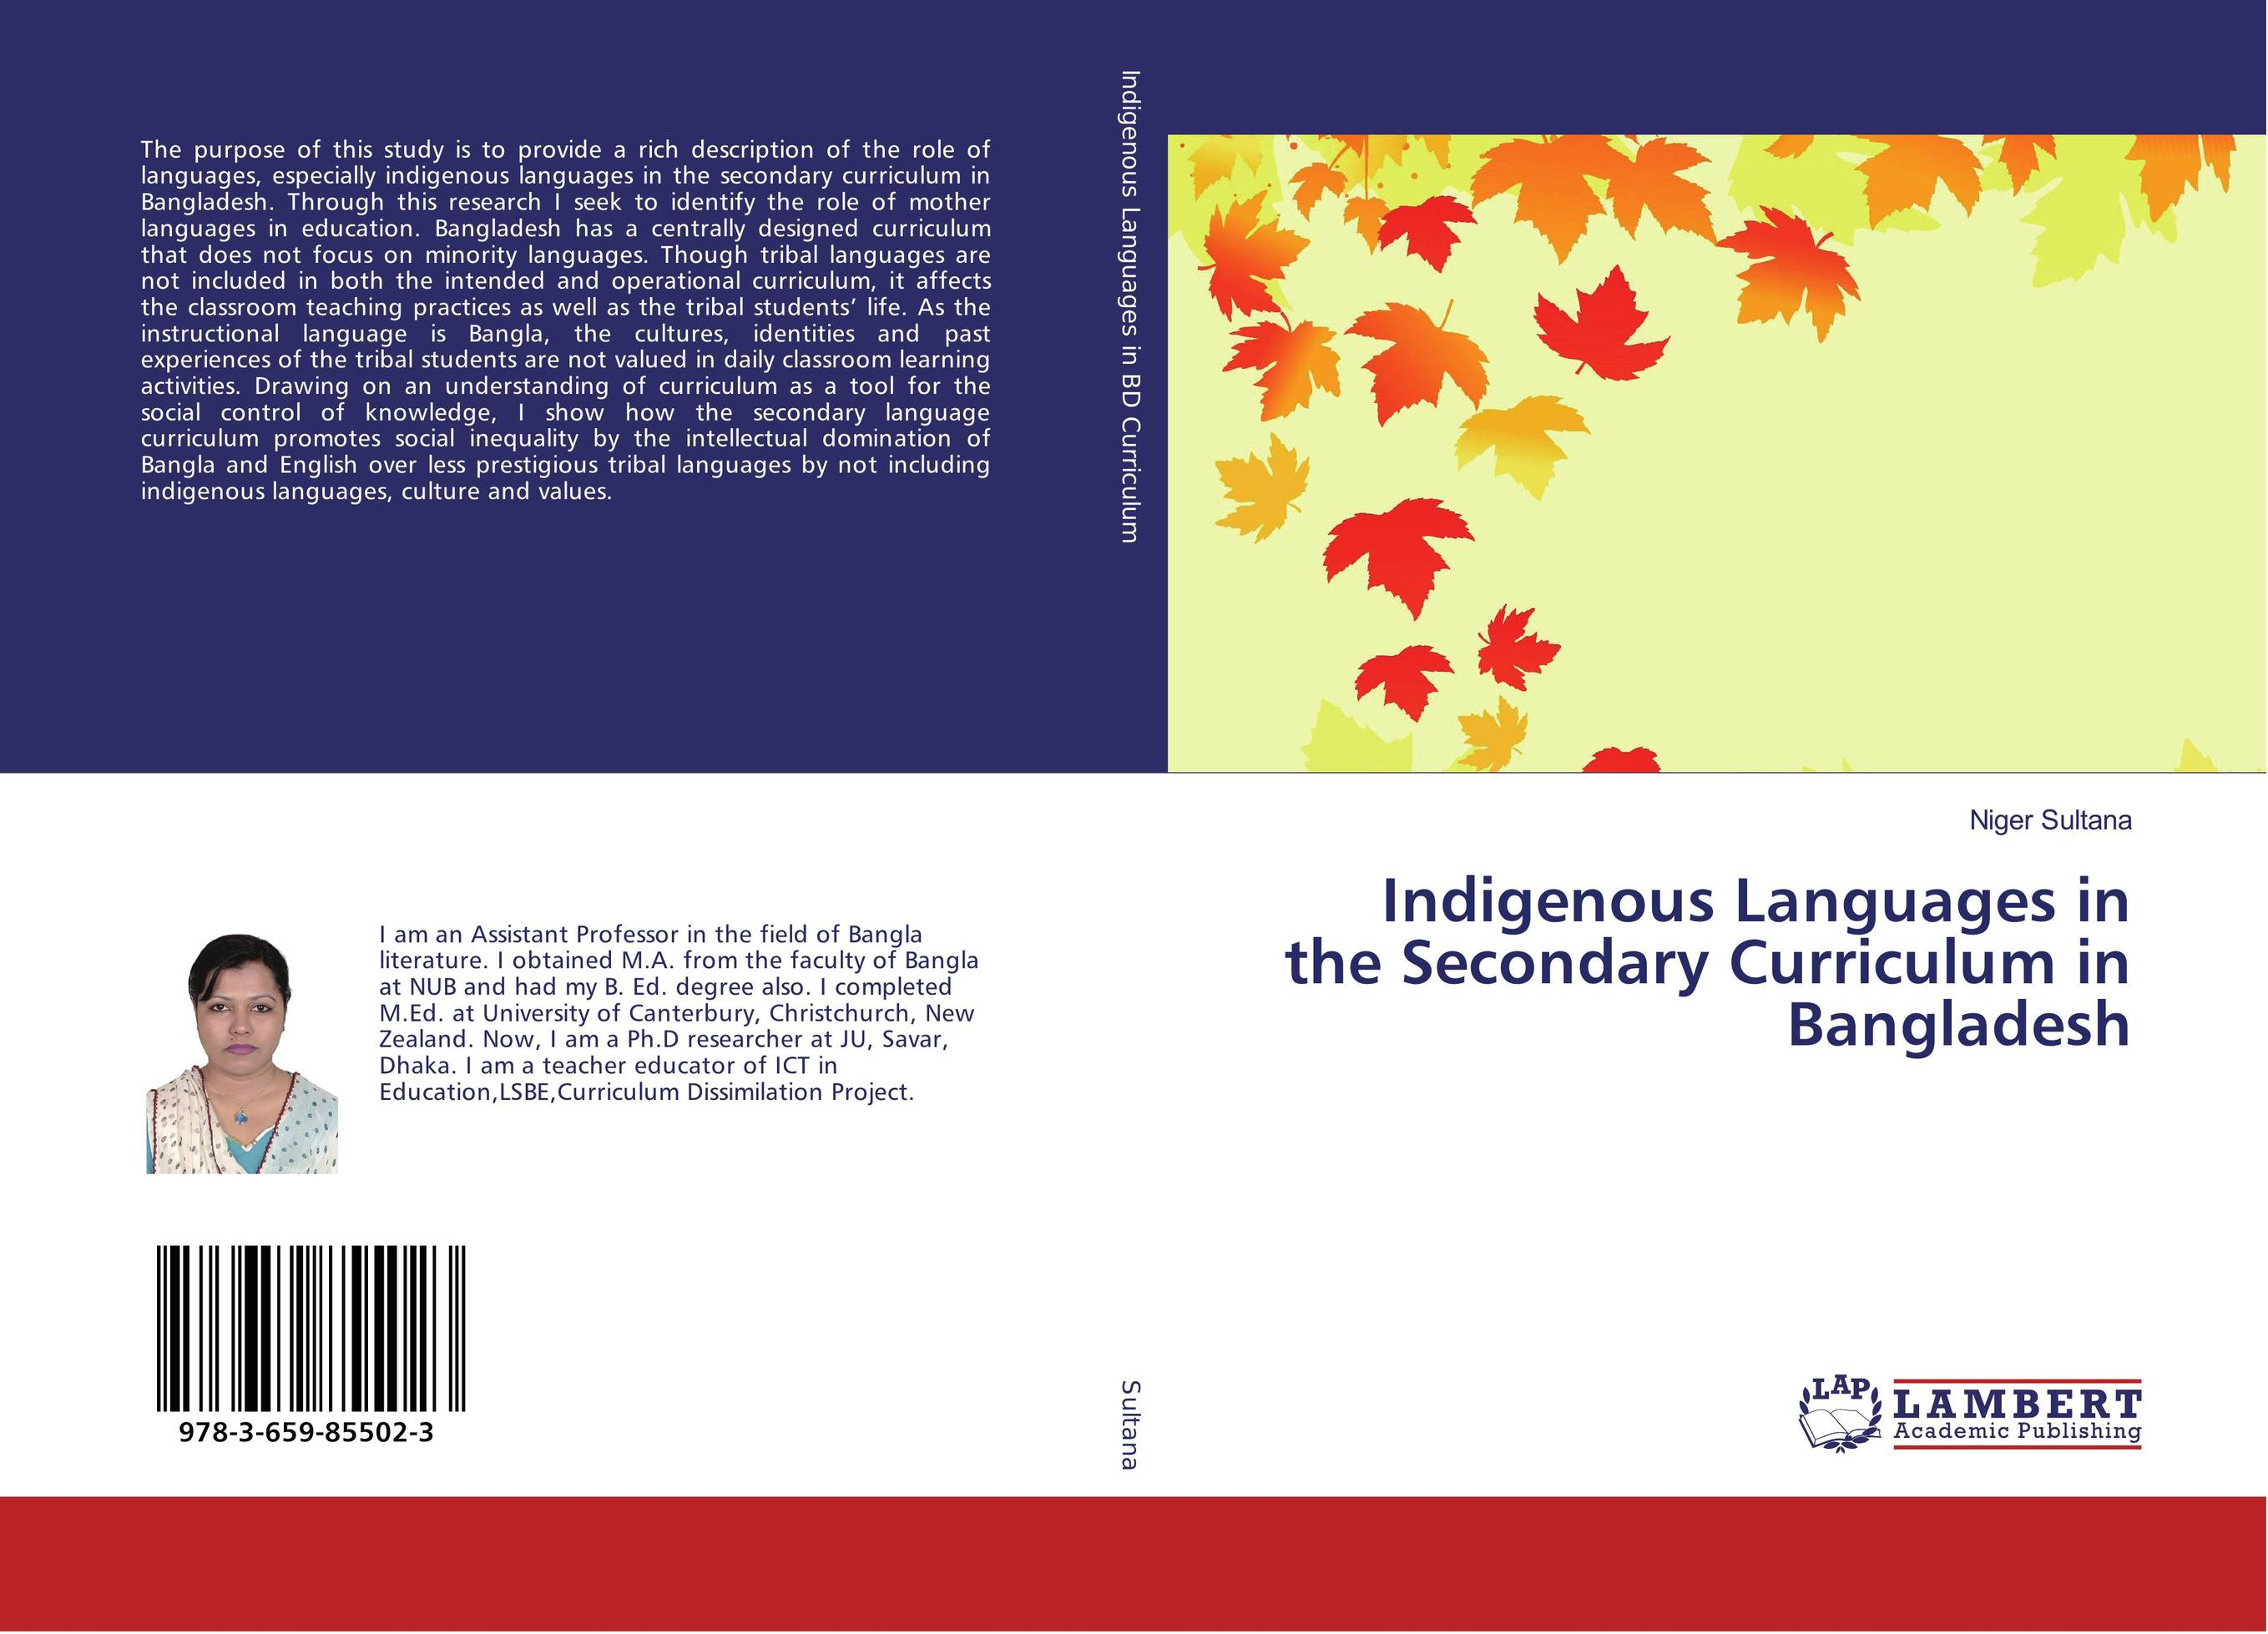 Indigenous Languages in the Secondary Curriculum in Bangladesh casio часы casio gw 9300cm 1e коллекция g shock